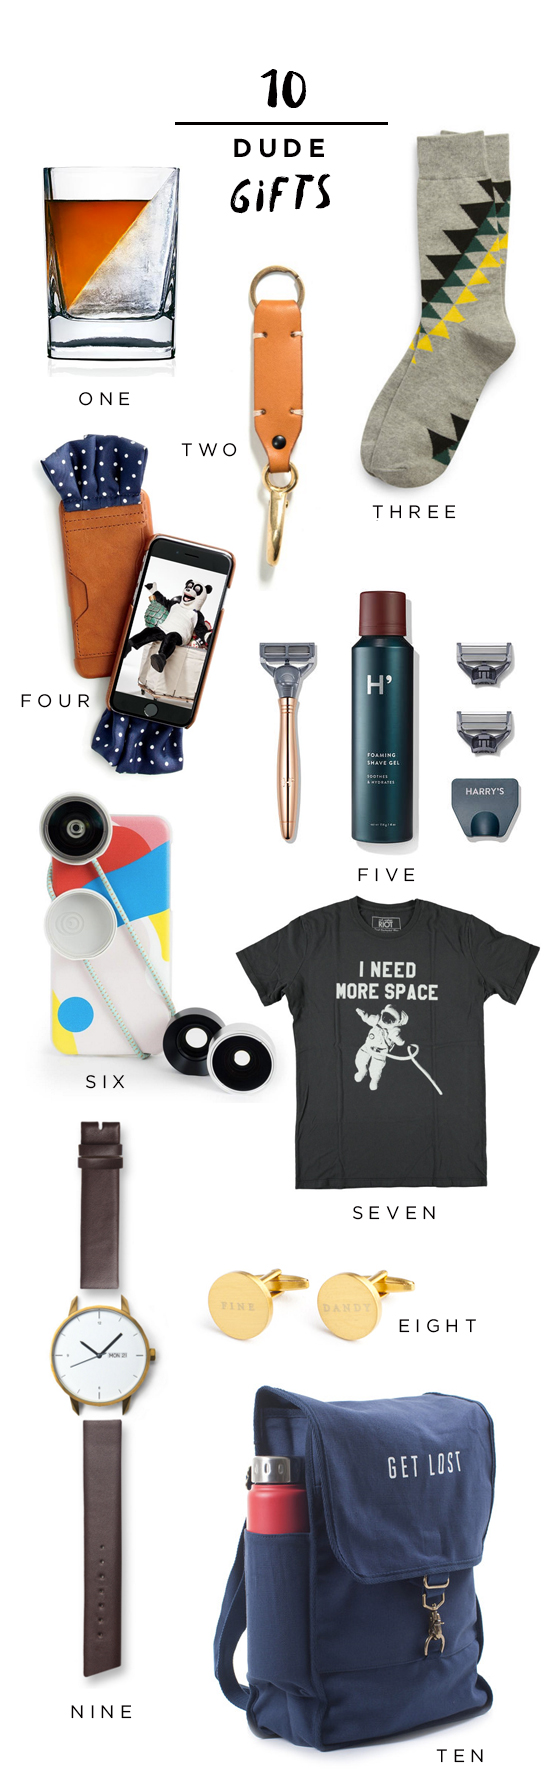 10 Gifts for Dudes